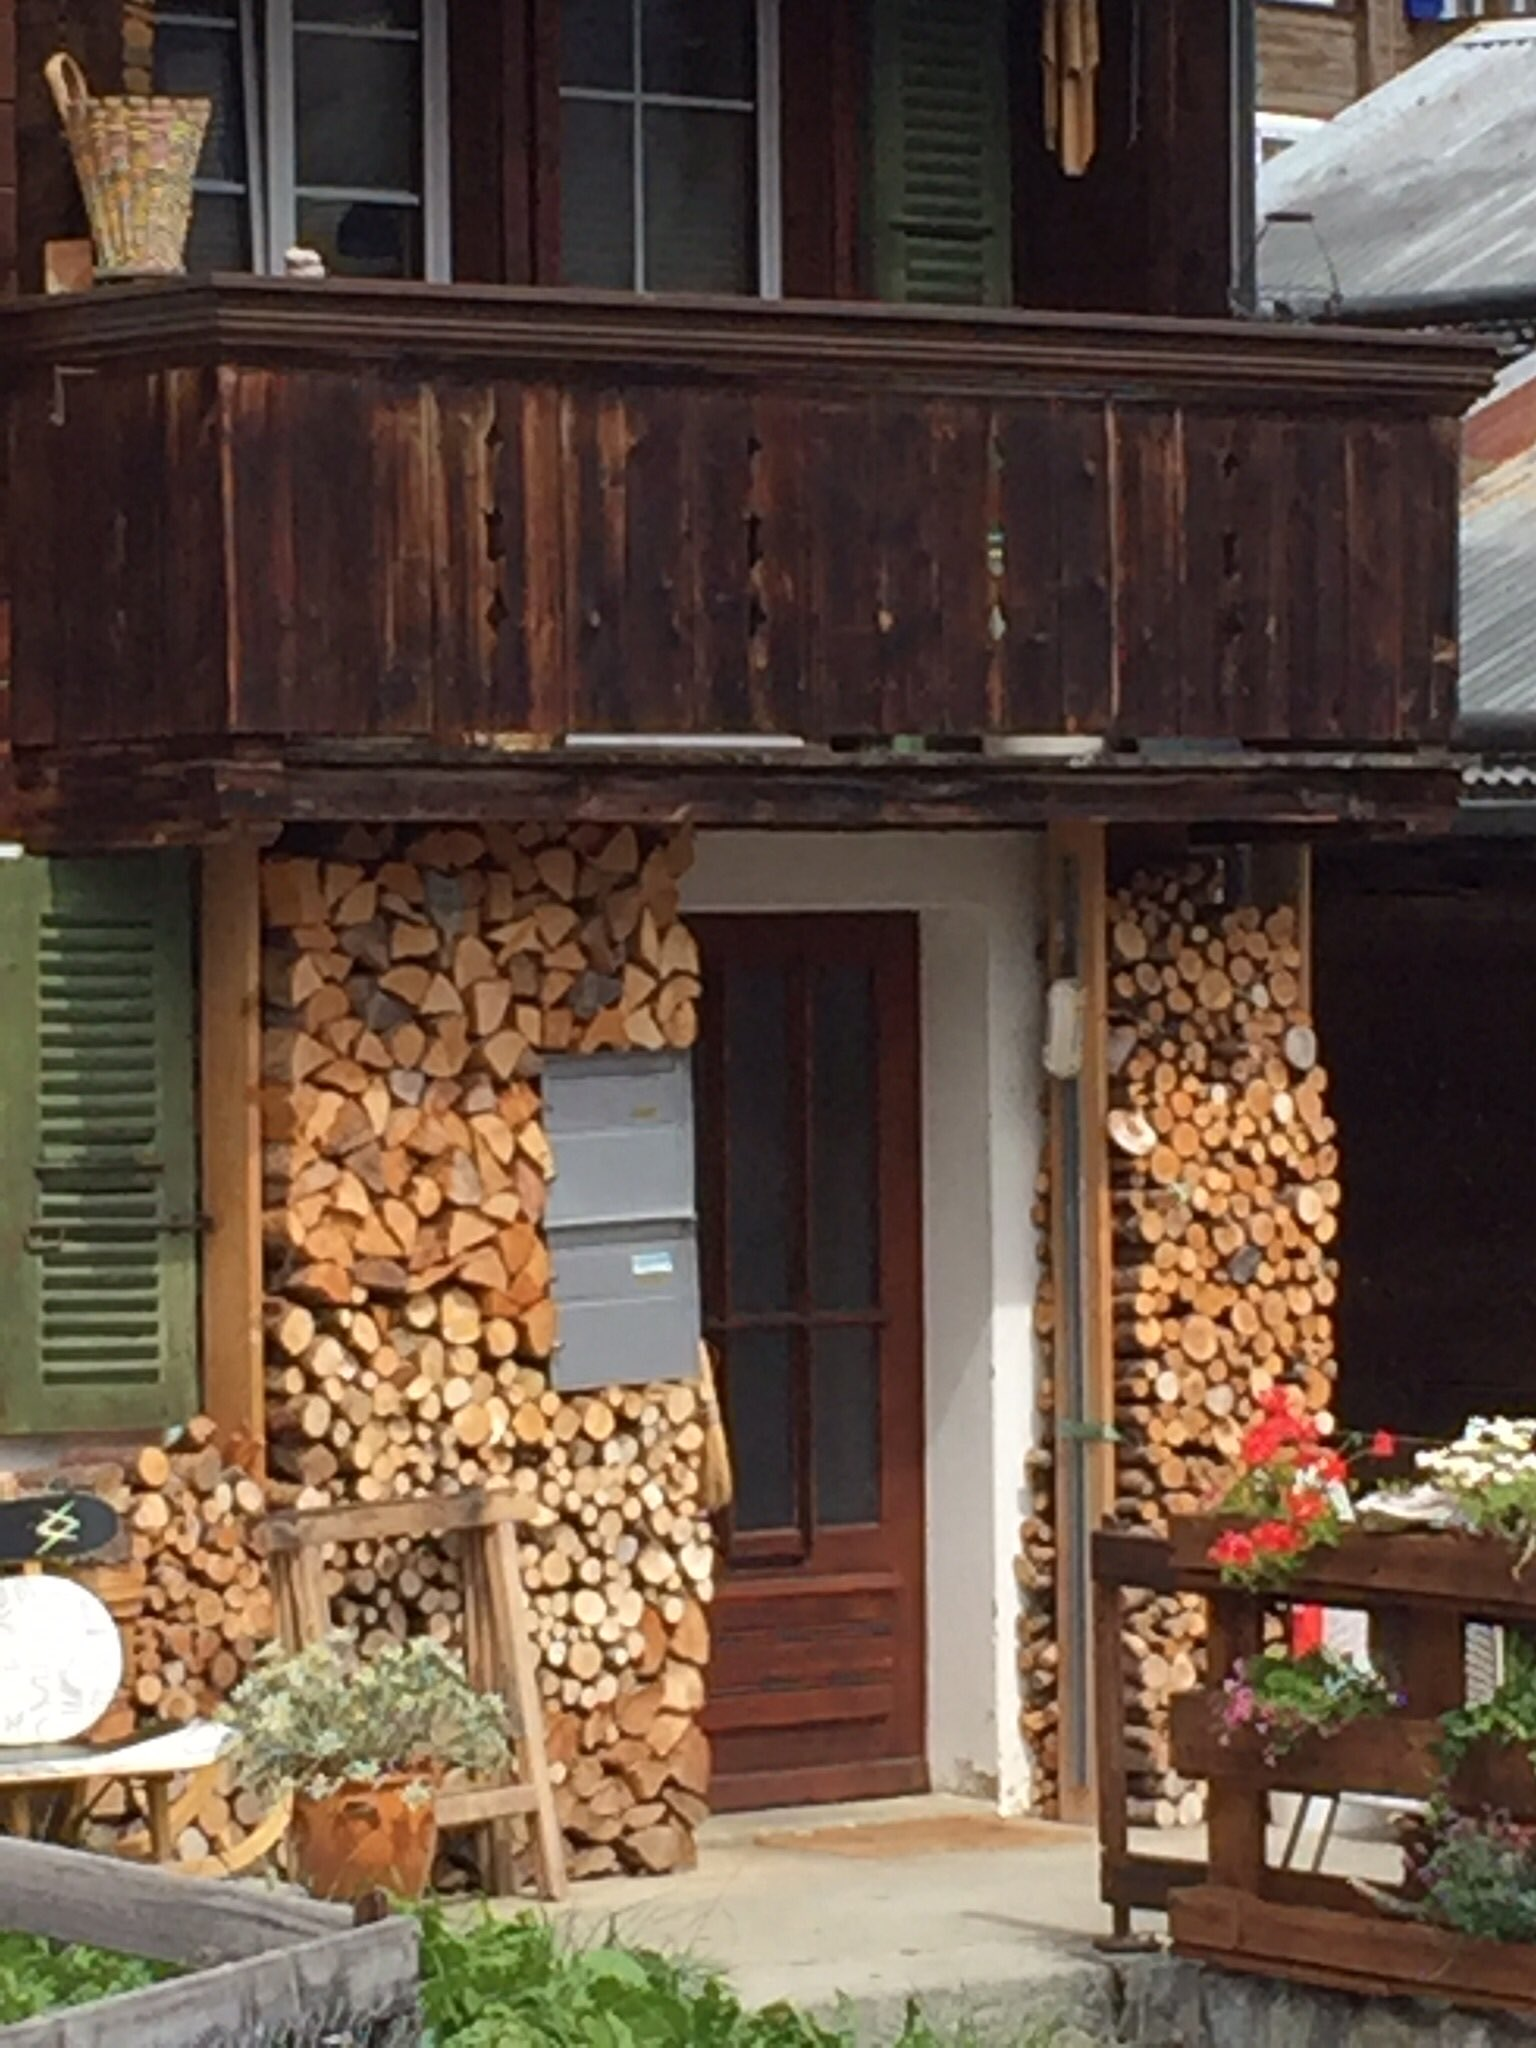 The Swiss like to keep their wood close ���� #inlovewithswitzerland https://t.co/JKqEQRSSXm